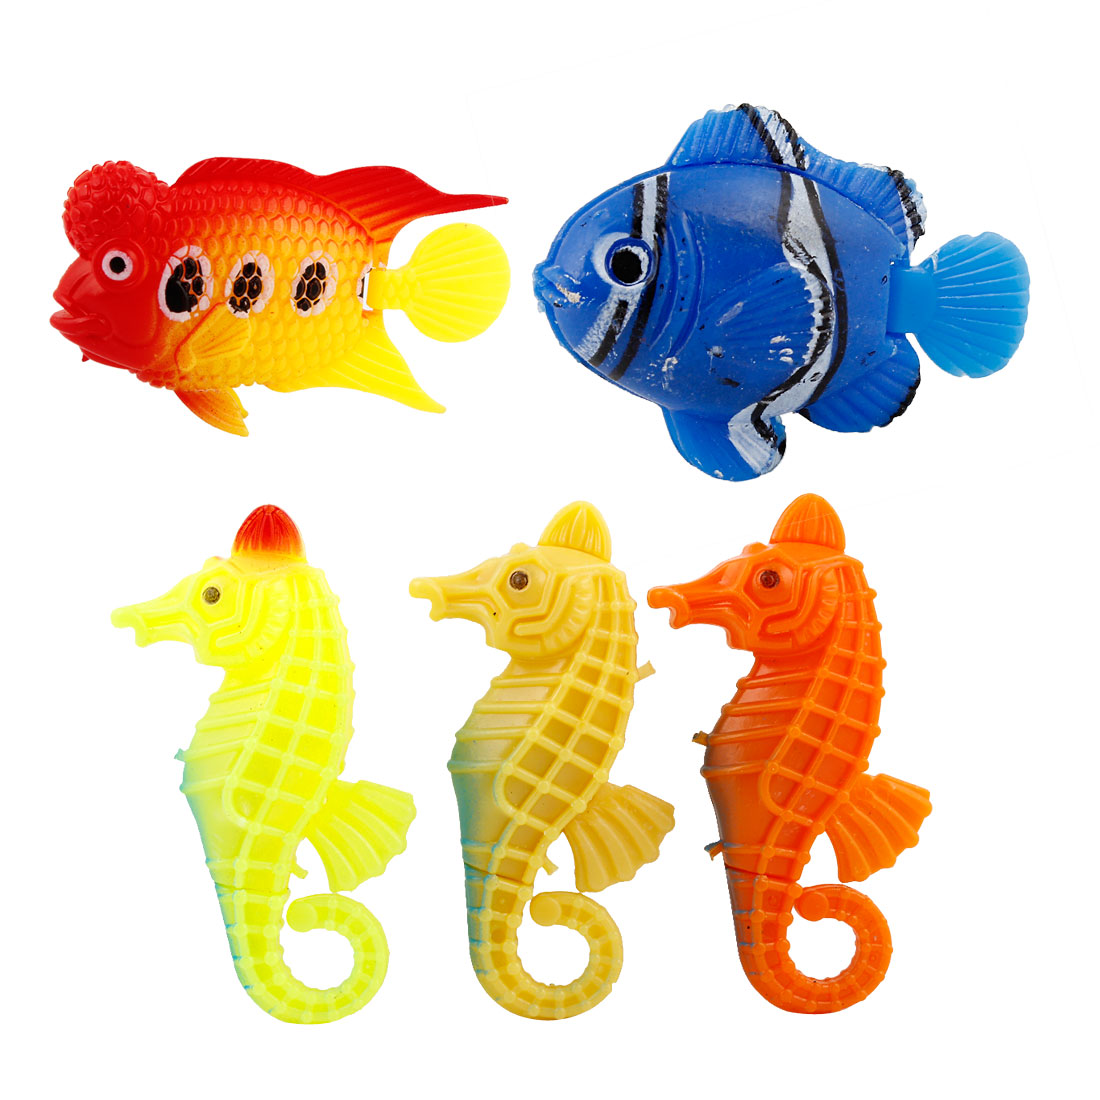 5 Pcs Assorted Color Plastic Swing Tail Tropical Fish Sea Horse Shape for Aquarium